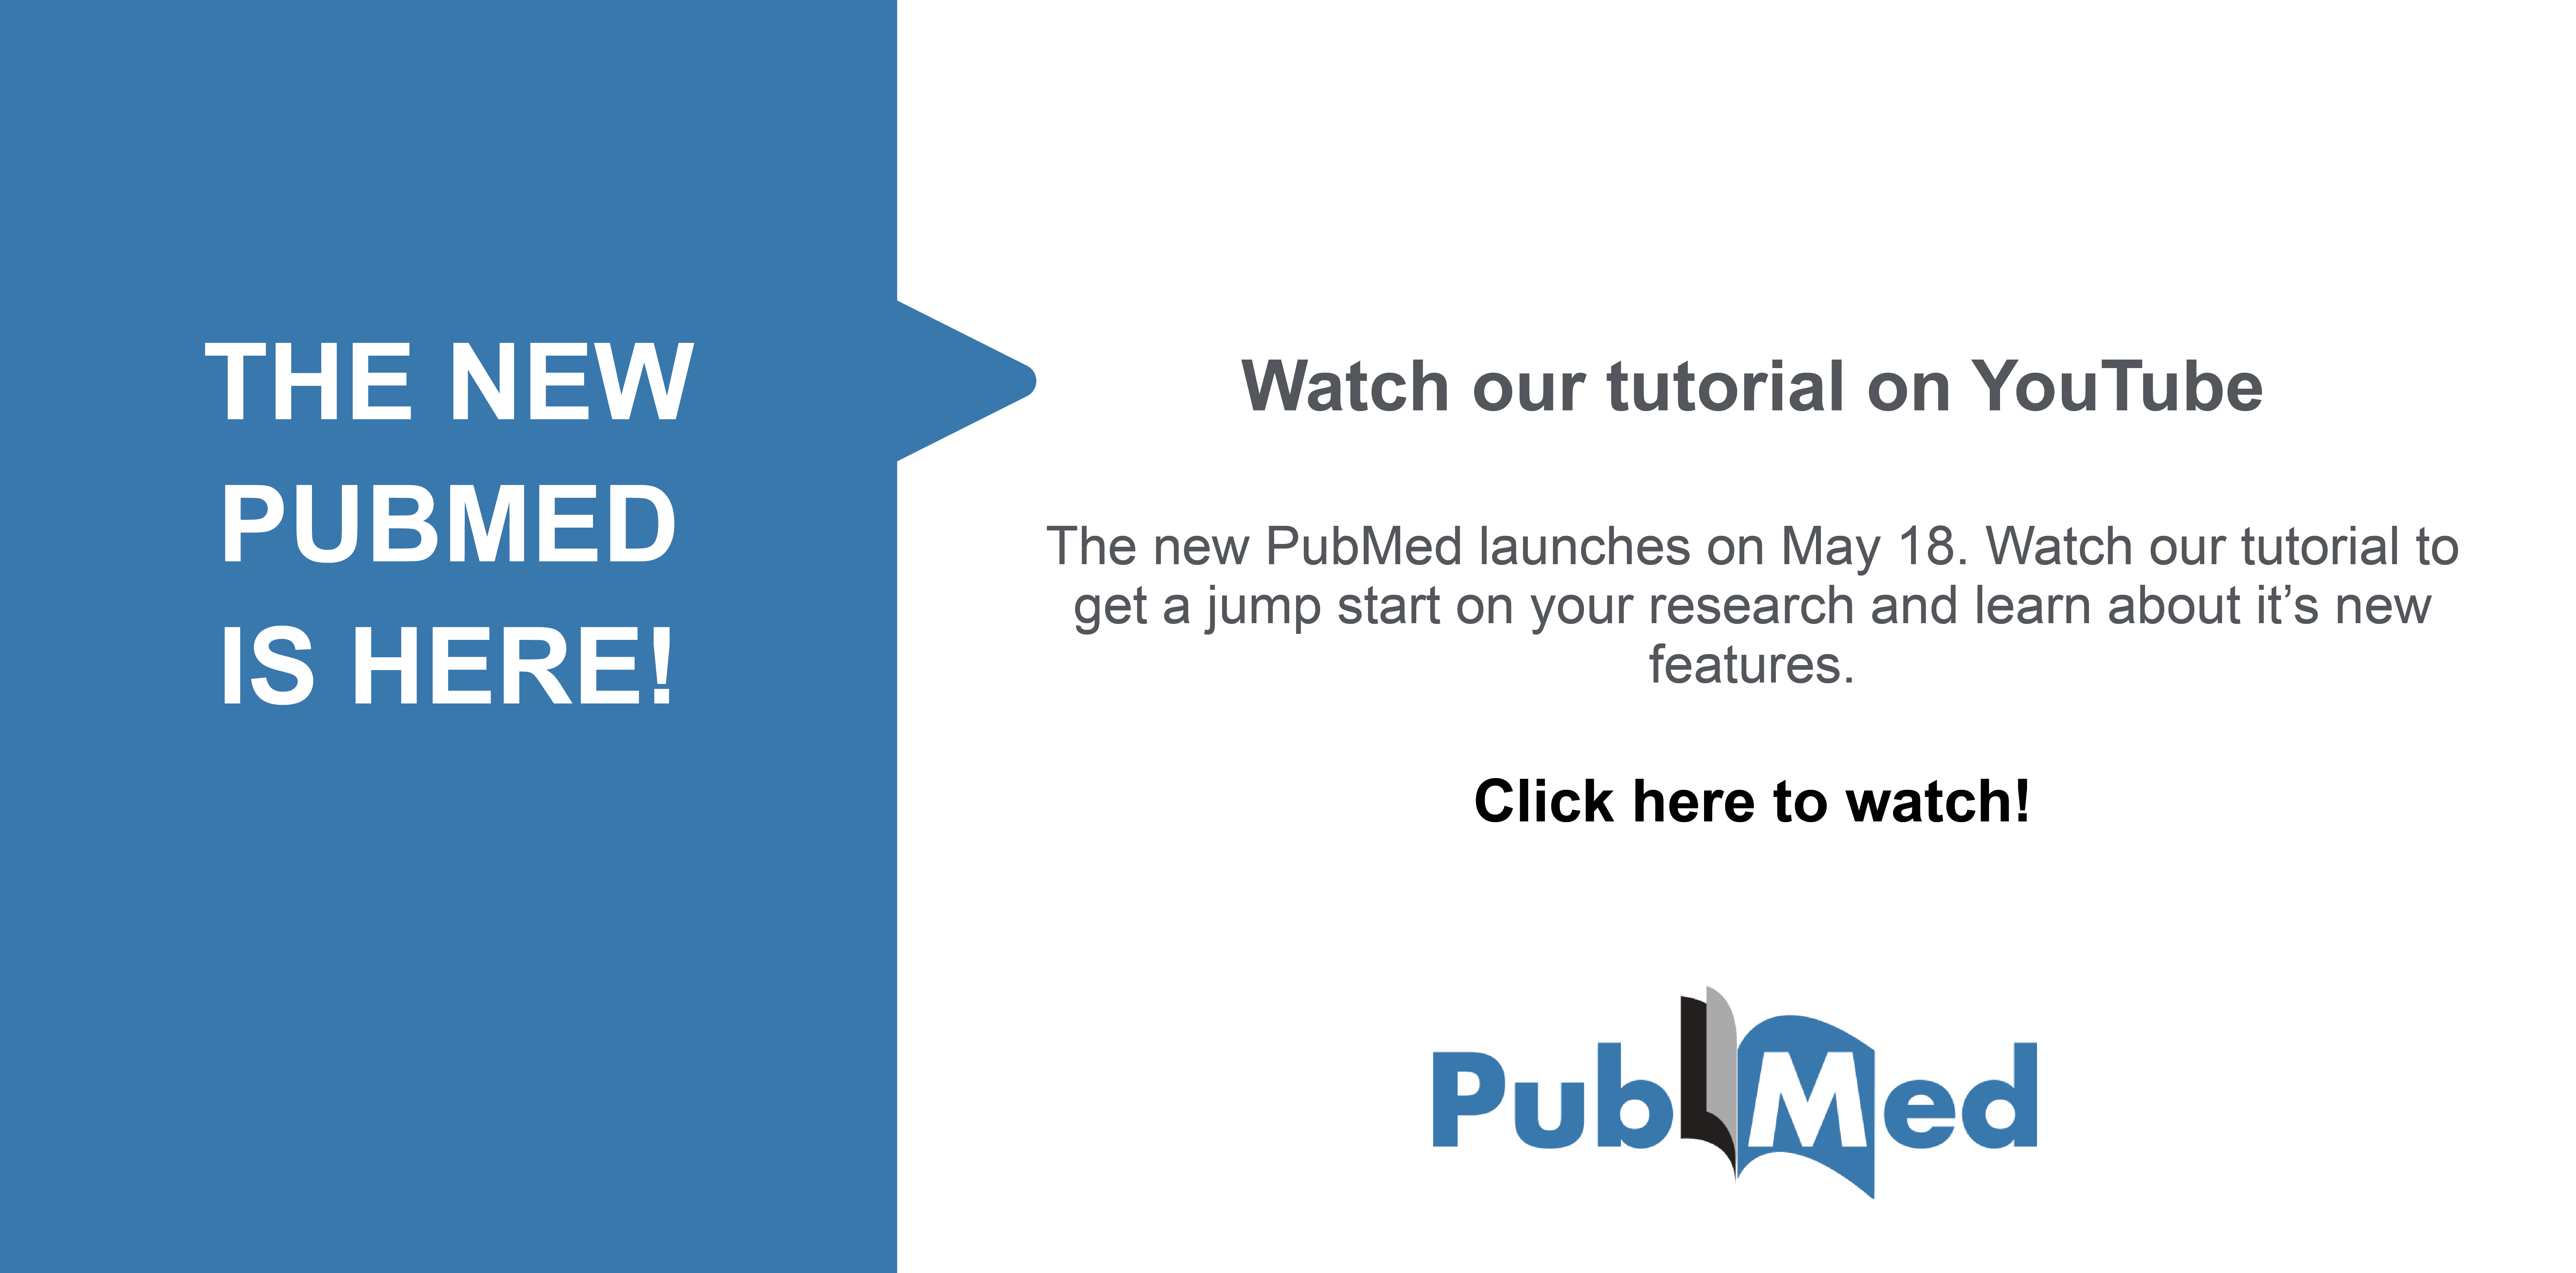 Link to our New PubMed Tutorial on YouTube